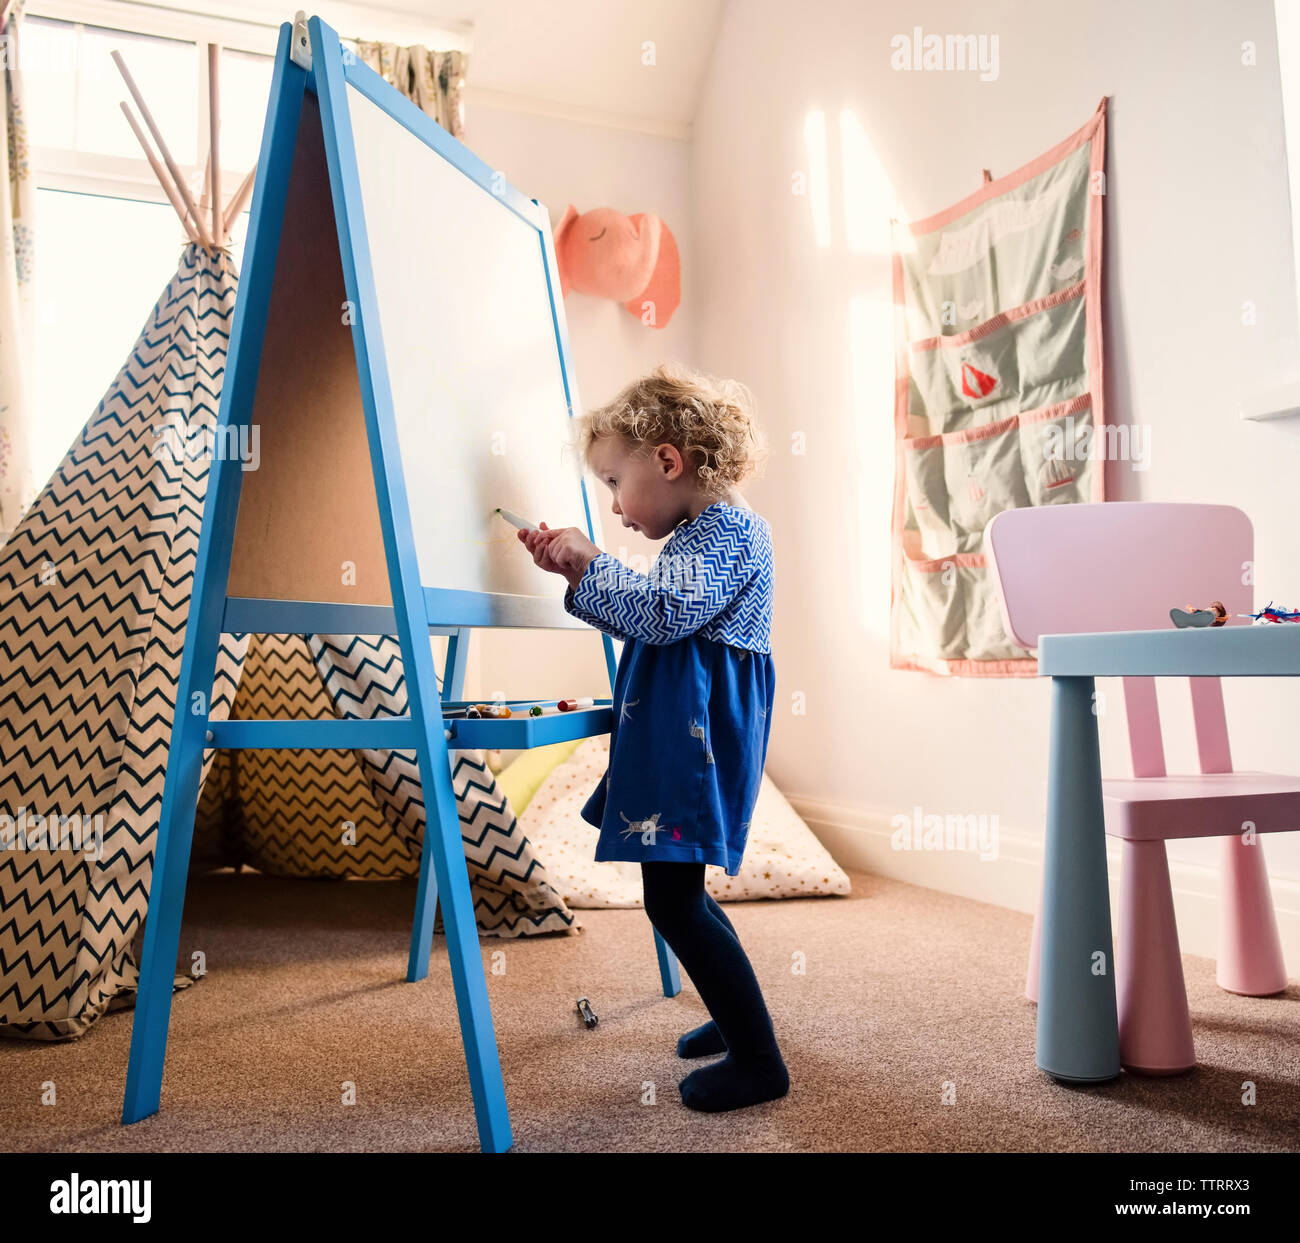 Girl drawing on artist's canvas while standing on rug at home - Stock Image